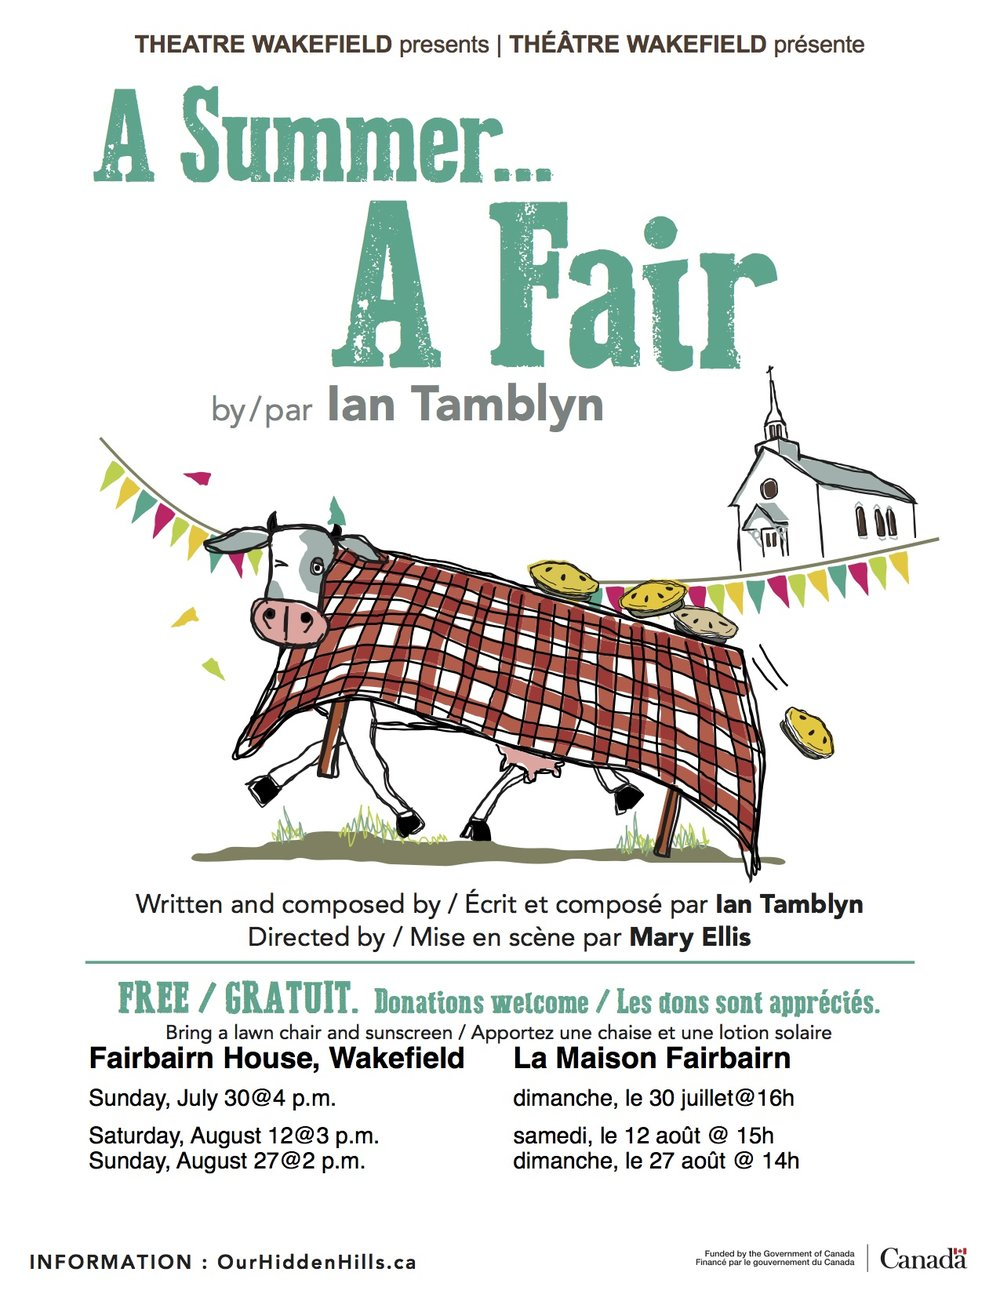 A Summer...A Fair - Sunday July 30, 2017 at 4 pmSaturday August 12, 2017 at 3 pmSunday August 27, 2017 at 2 pm